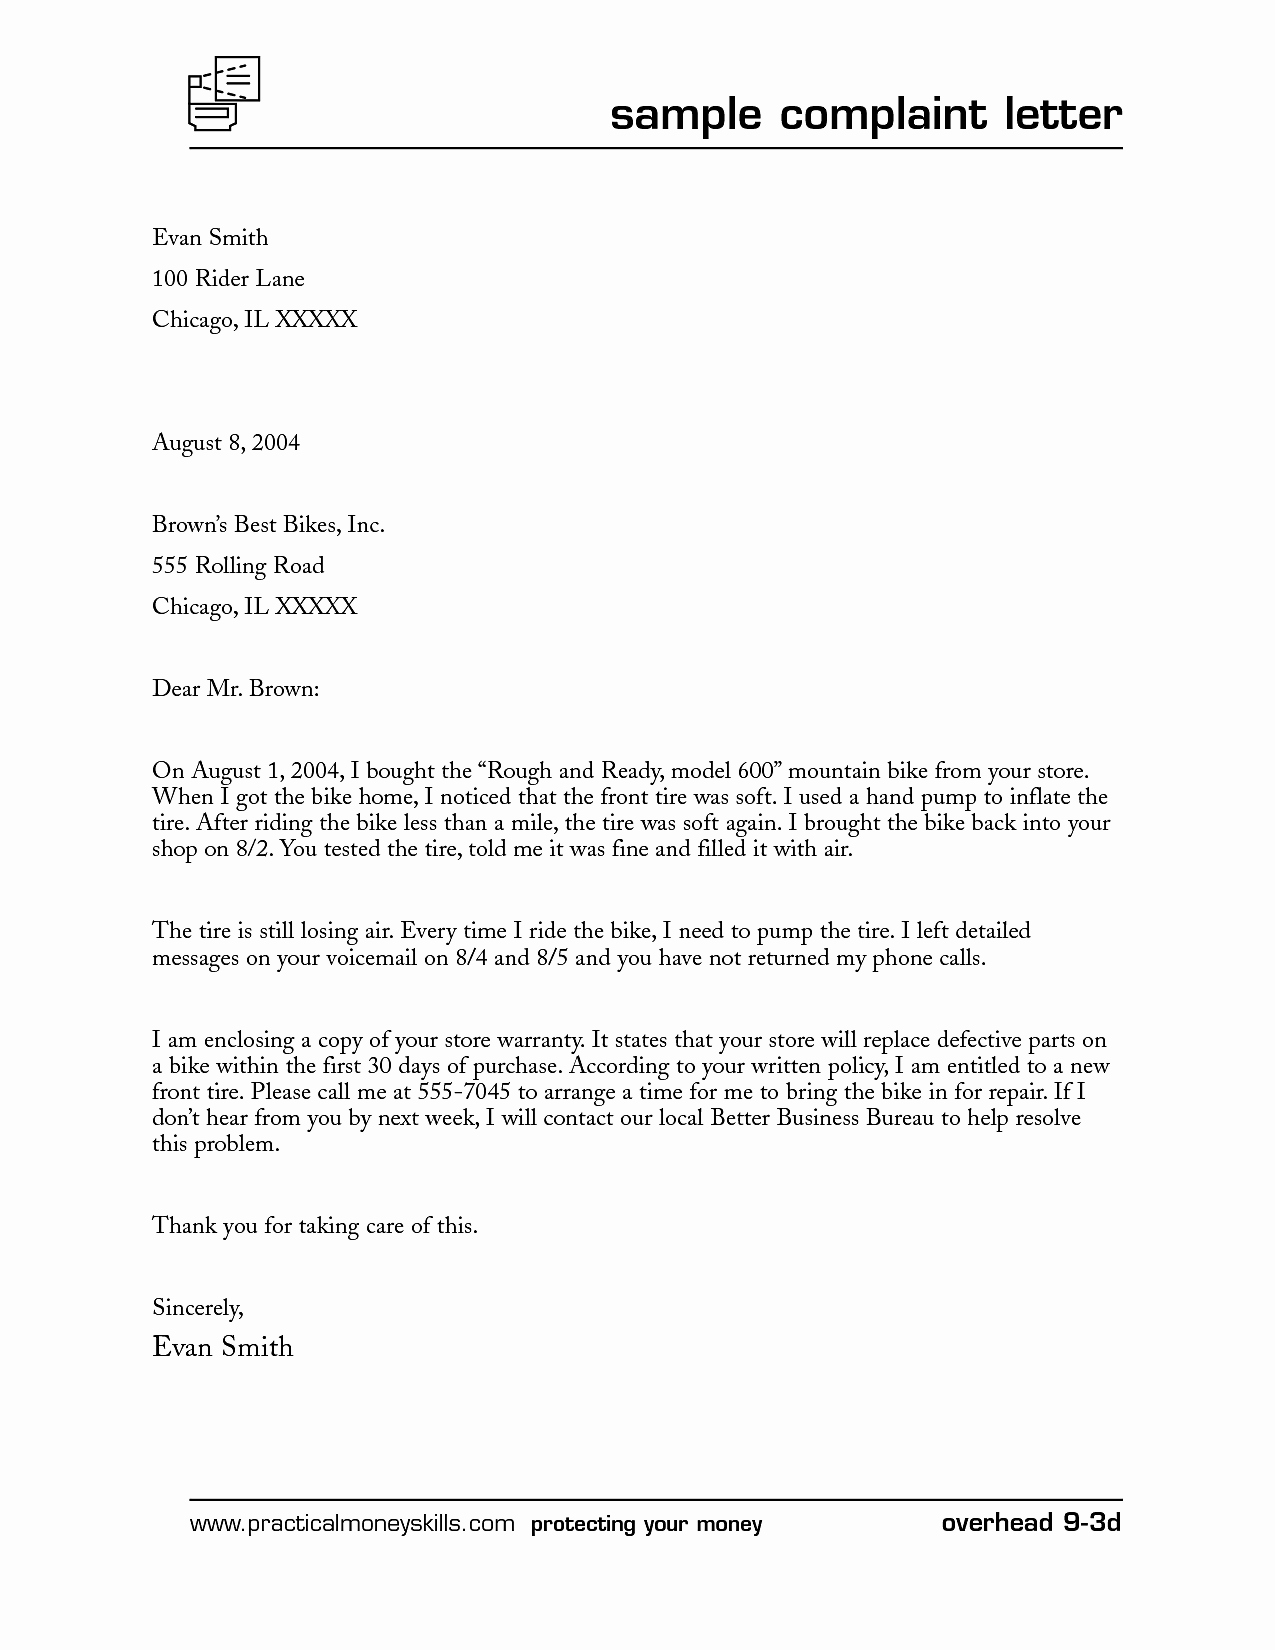 Business Letter format Template Word Awesome Business Plaint Letter format Mughals